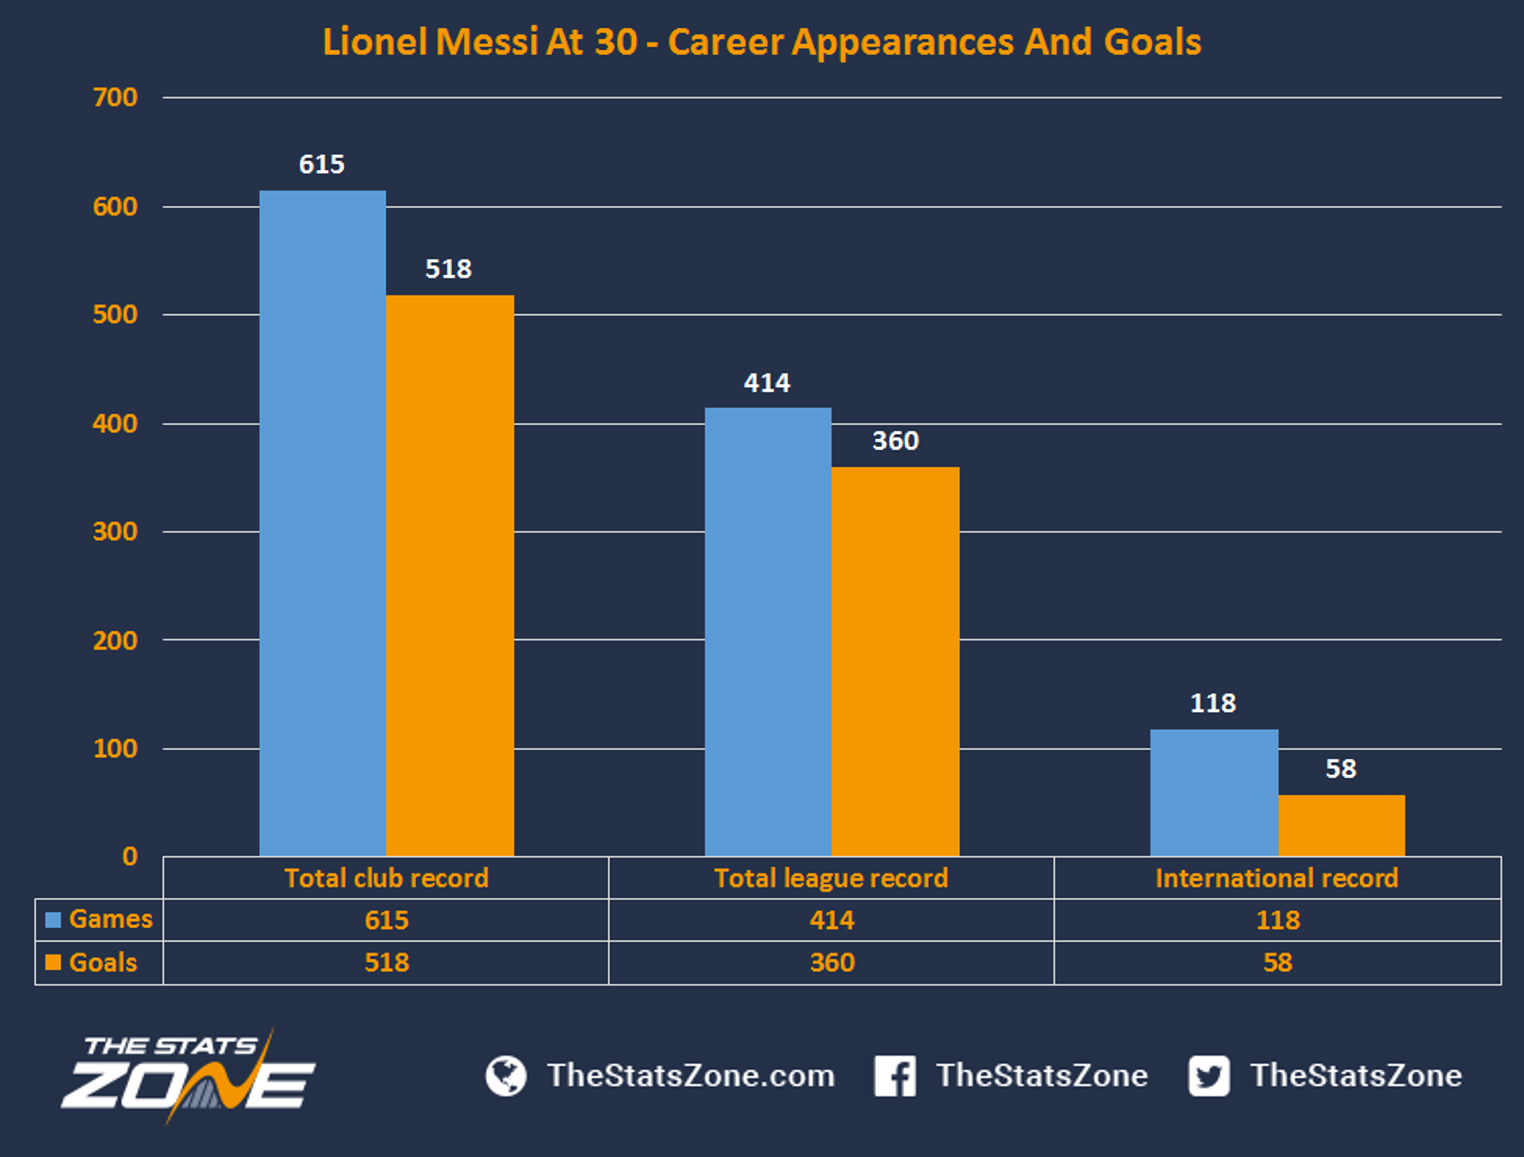 Lionel Messi At 30 – Statistics, Achievements And The Future for Messi Calendar Year Stats